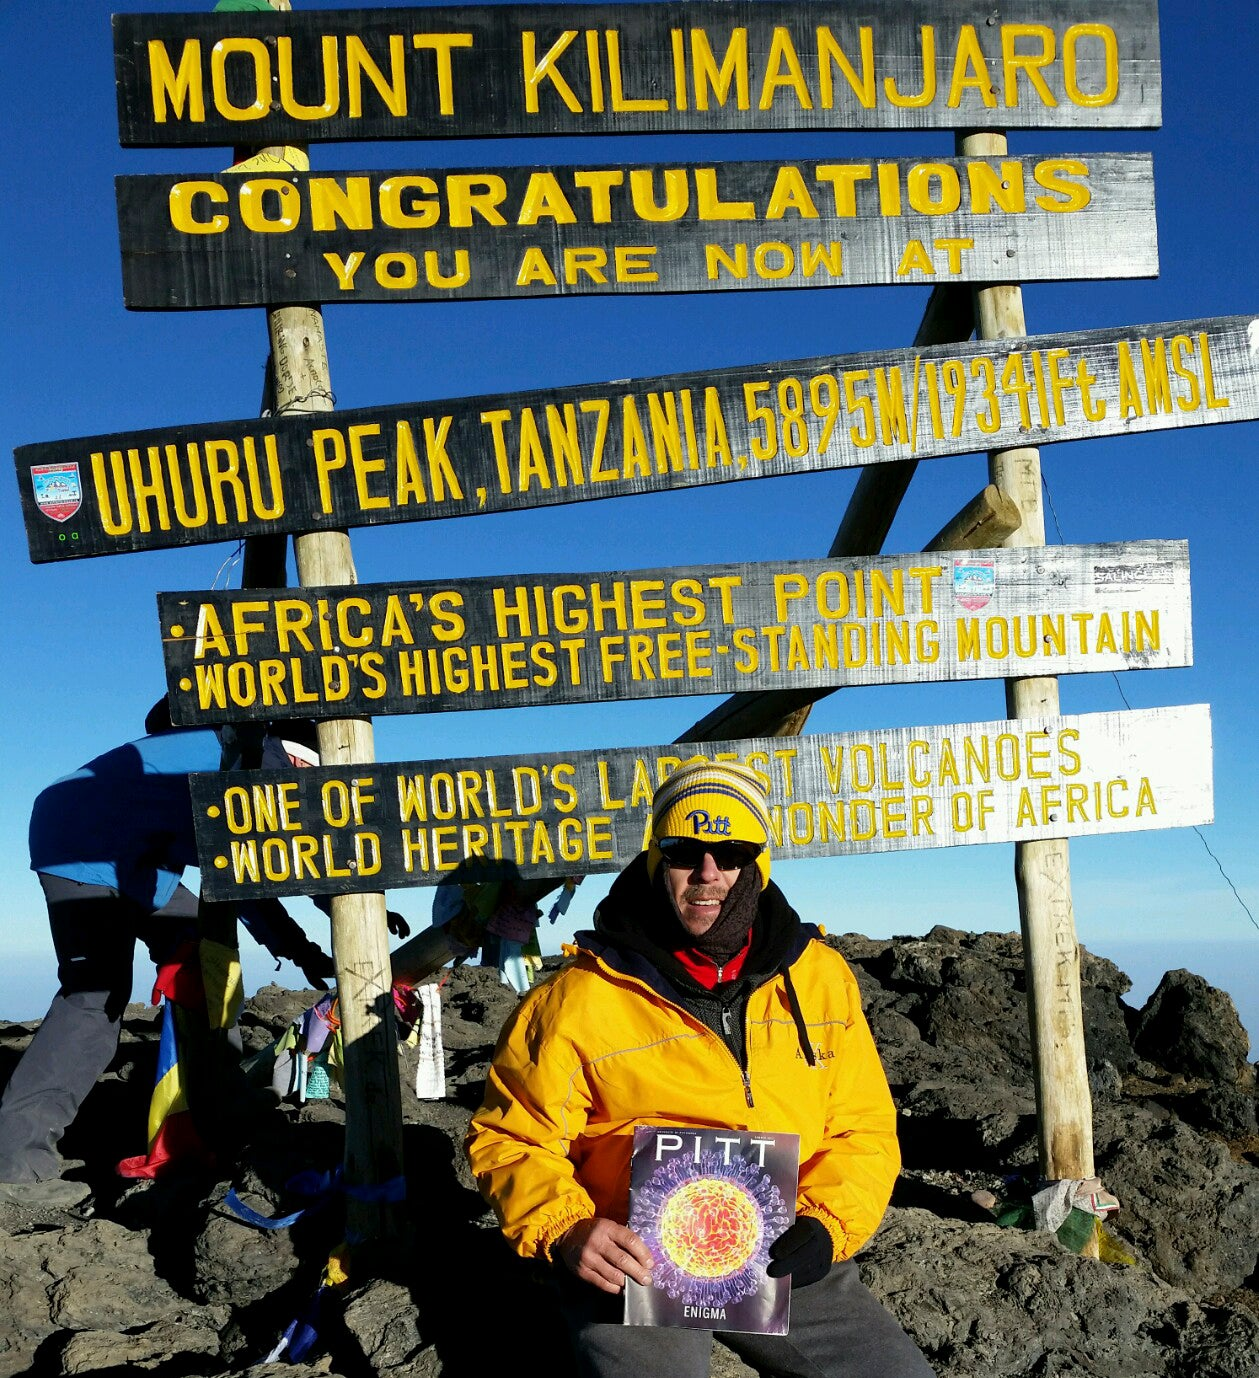 Chris Meilinger (PHARM '90) took Pitt Magazine to new heights when he brought it along on a climb to the top of Tanzania's famed Mount Kilimanjaro.